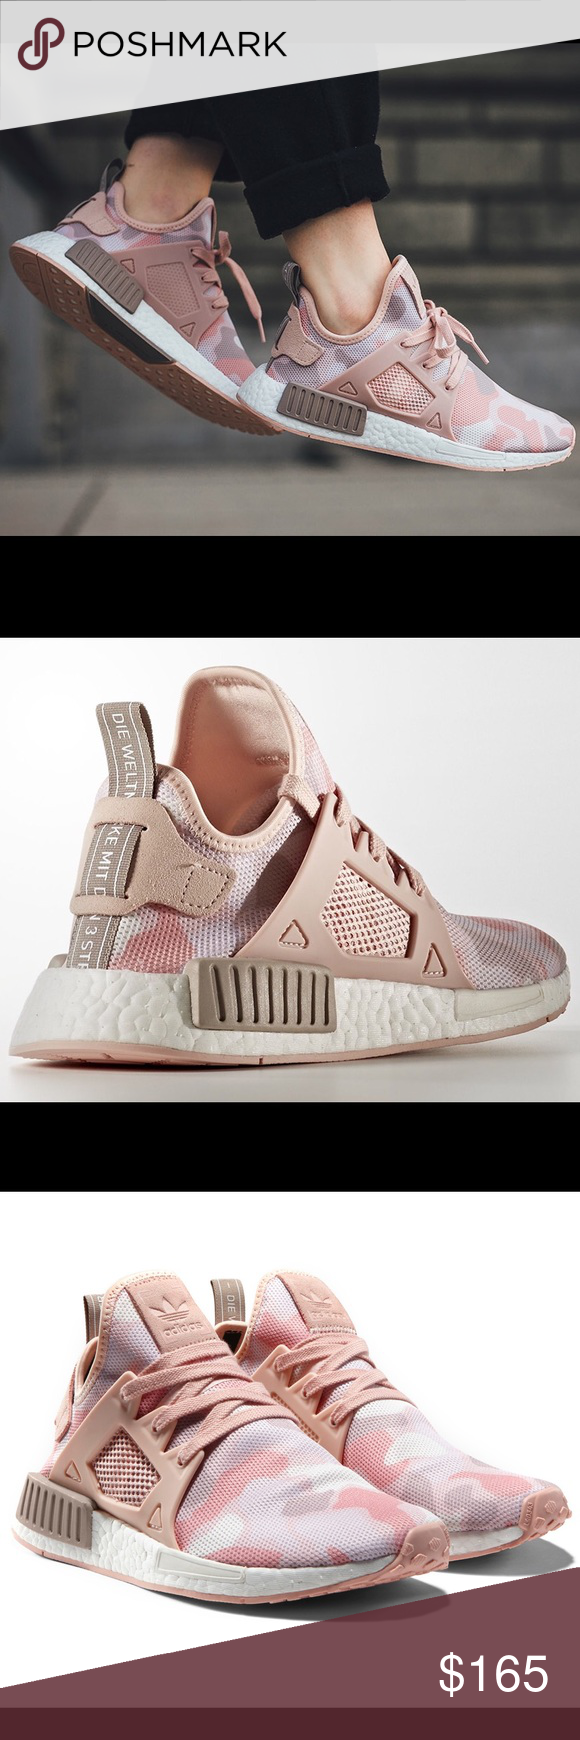 4fc974e24 pink adidas superstar women adidas nmd xr1 white duck camo Equipped ...